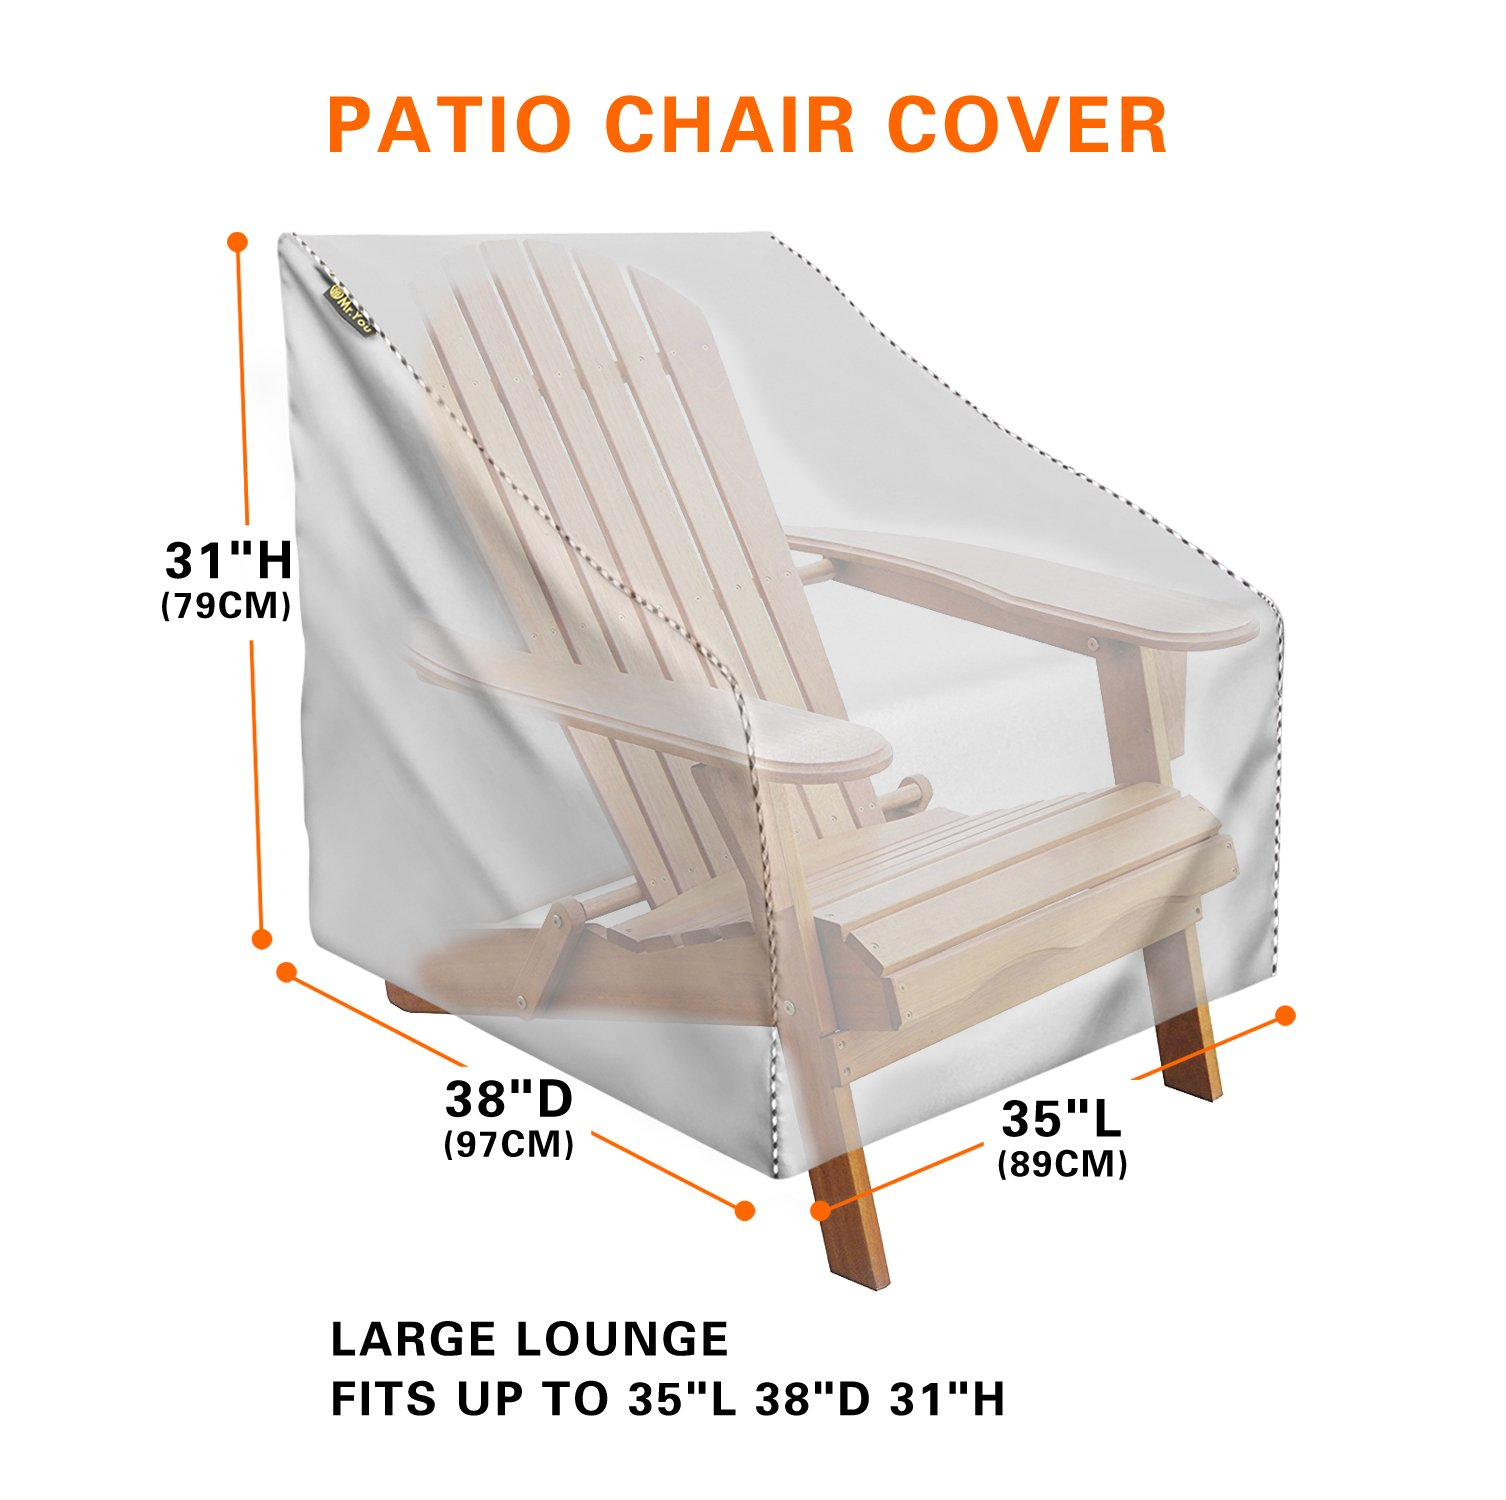 Mr.You Waterproof Patio Chair Covers for outdoor Heavy Duty For Spring Sliver No tearing No fading 5 Years Warranty L35in D38in H31in